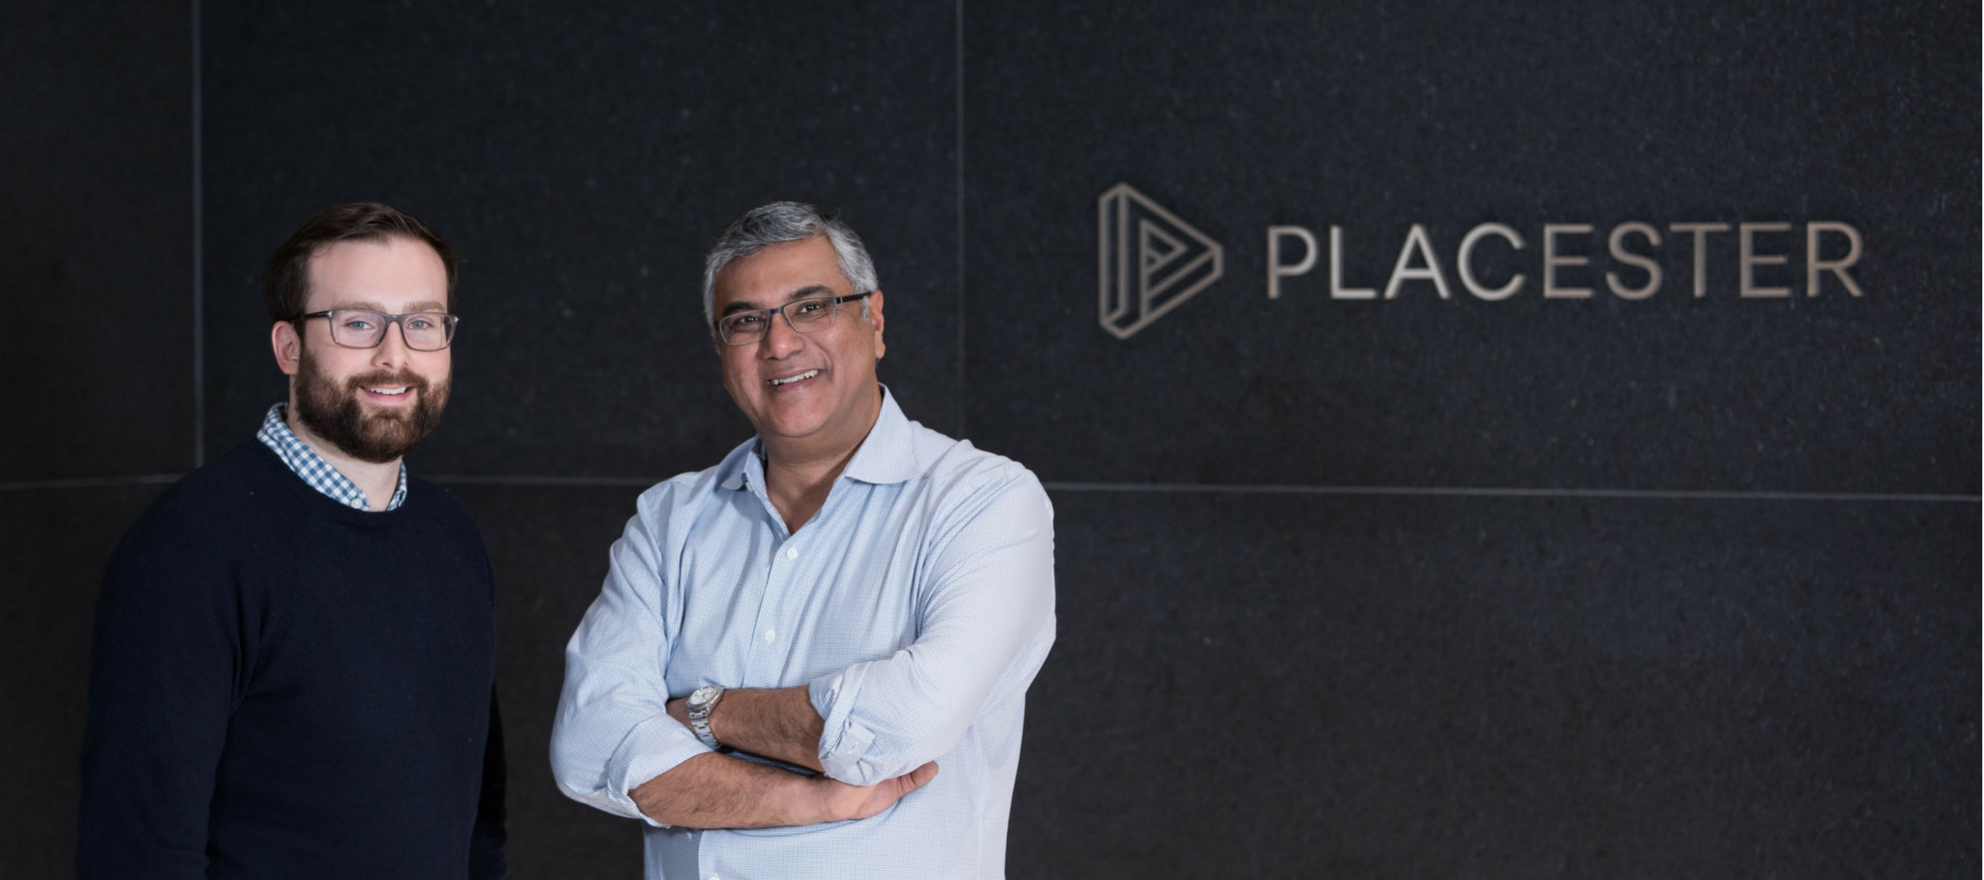 placester CEO